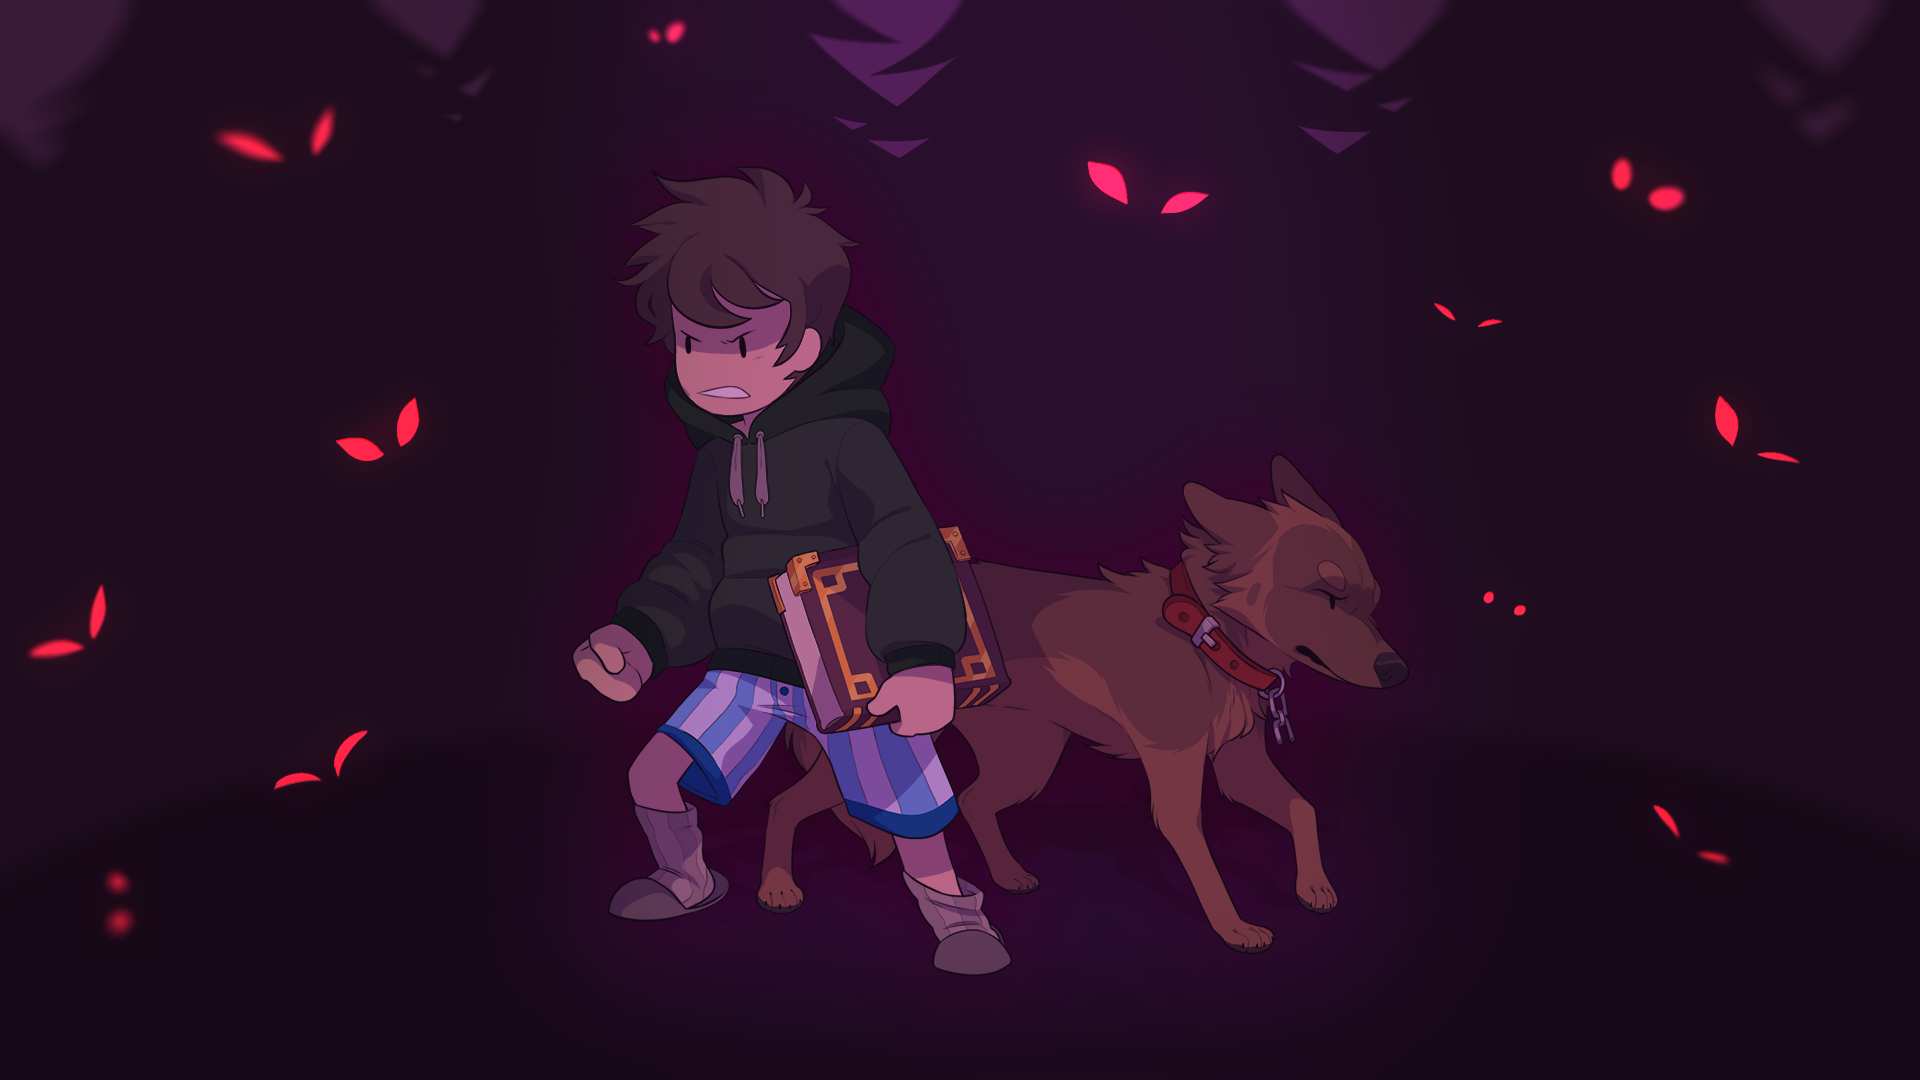 Heartbound by Pirate Software